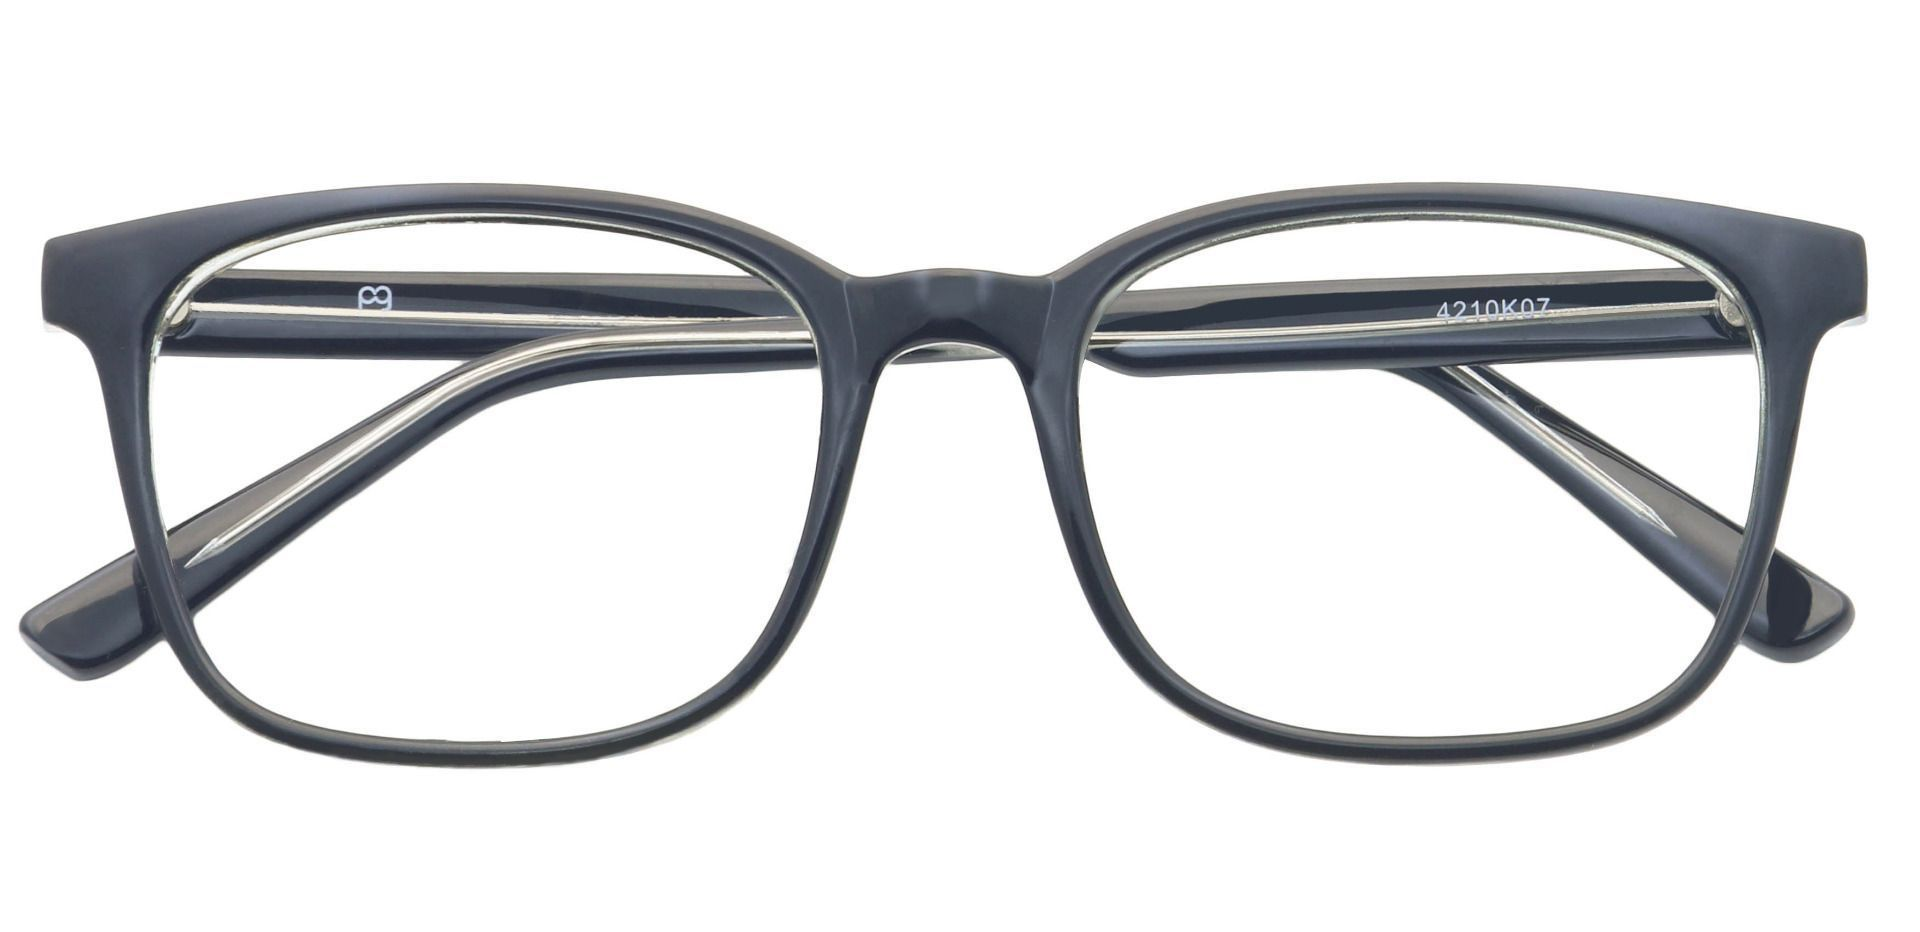 Windsor Rectangle Eyeglasses Frame - Shiny Black/crystal